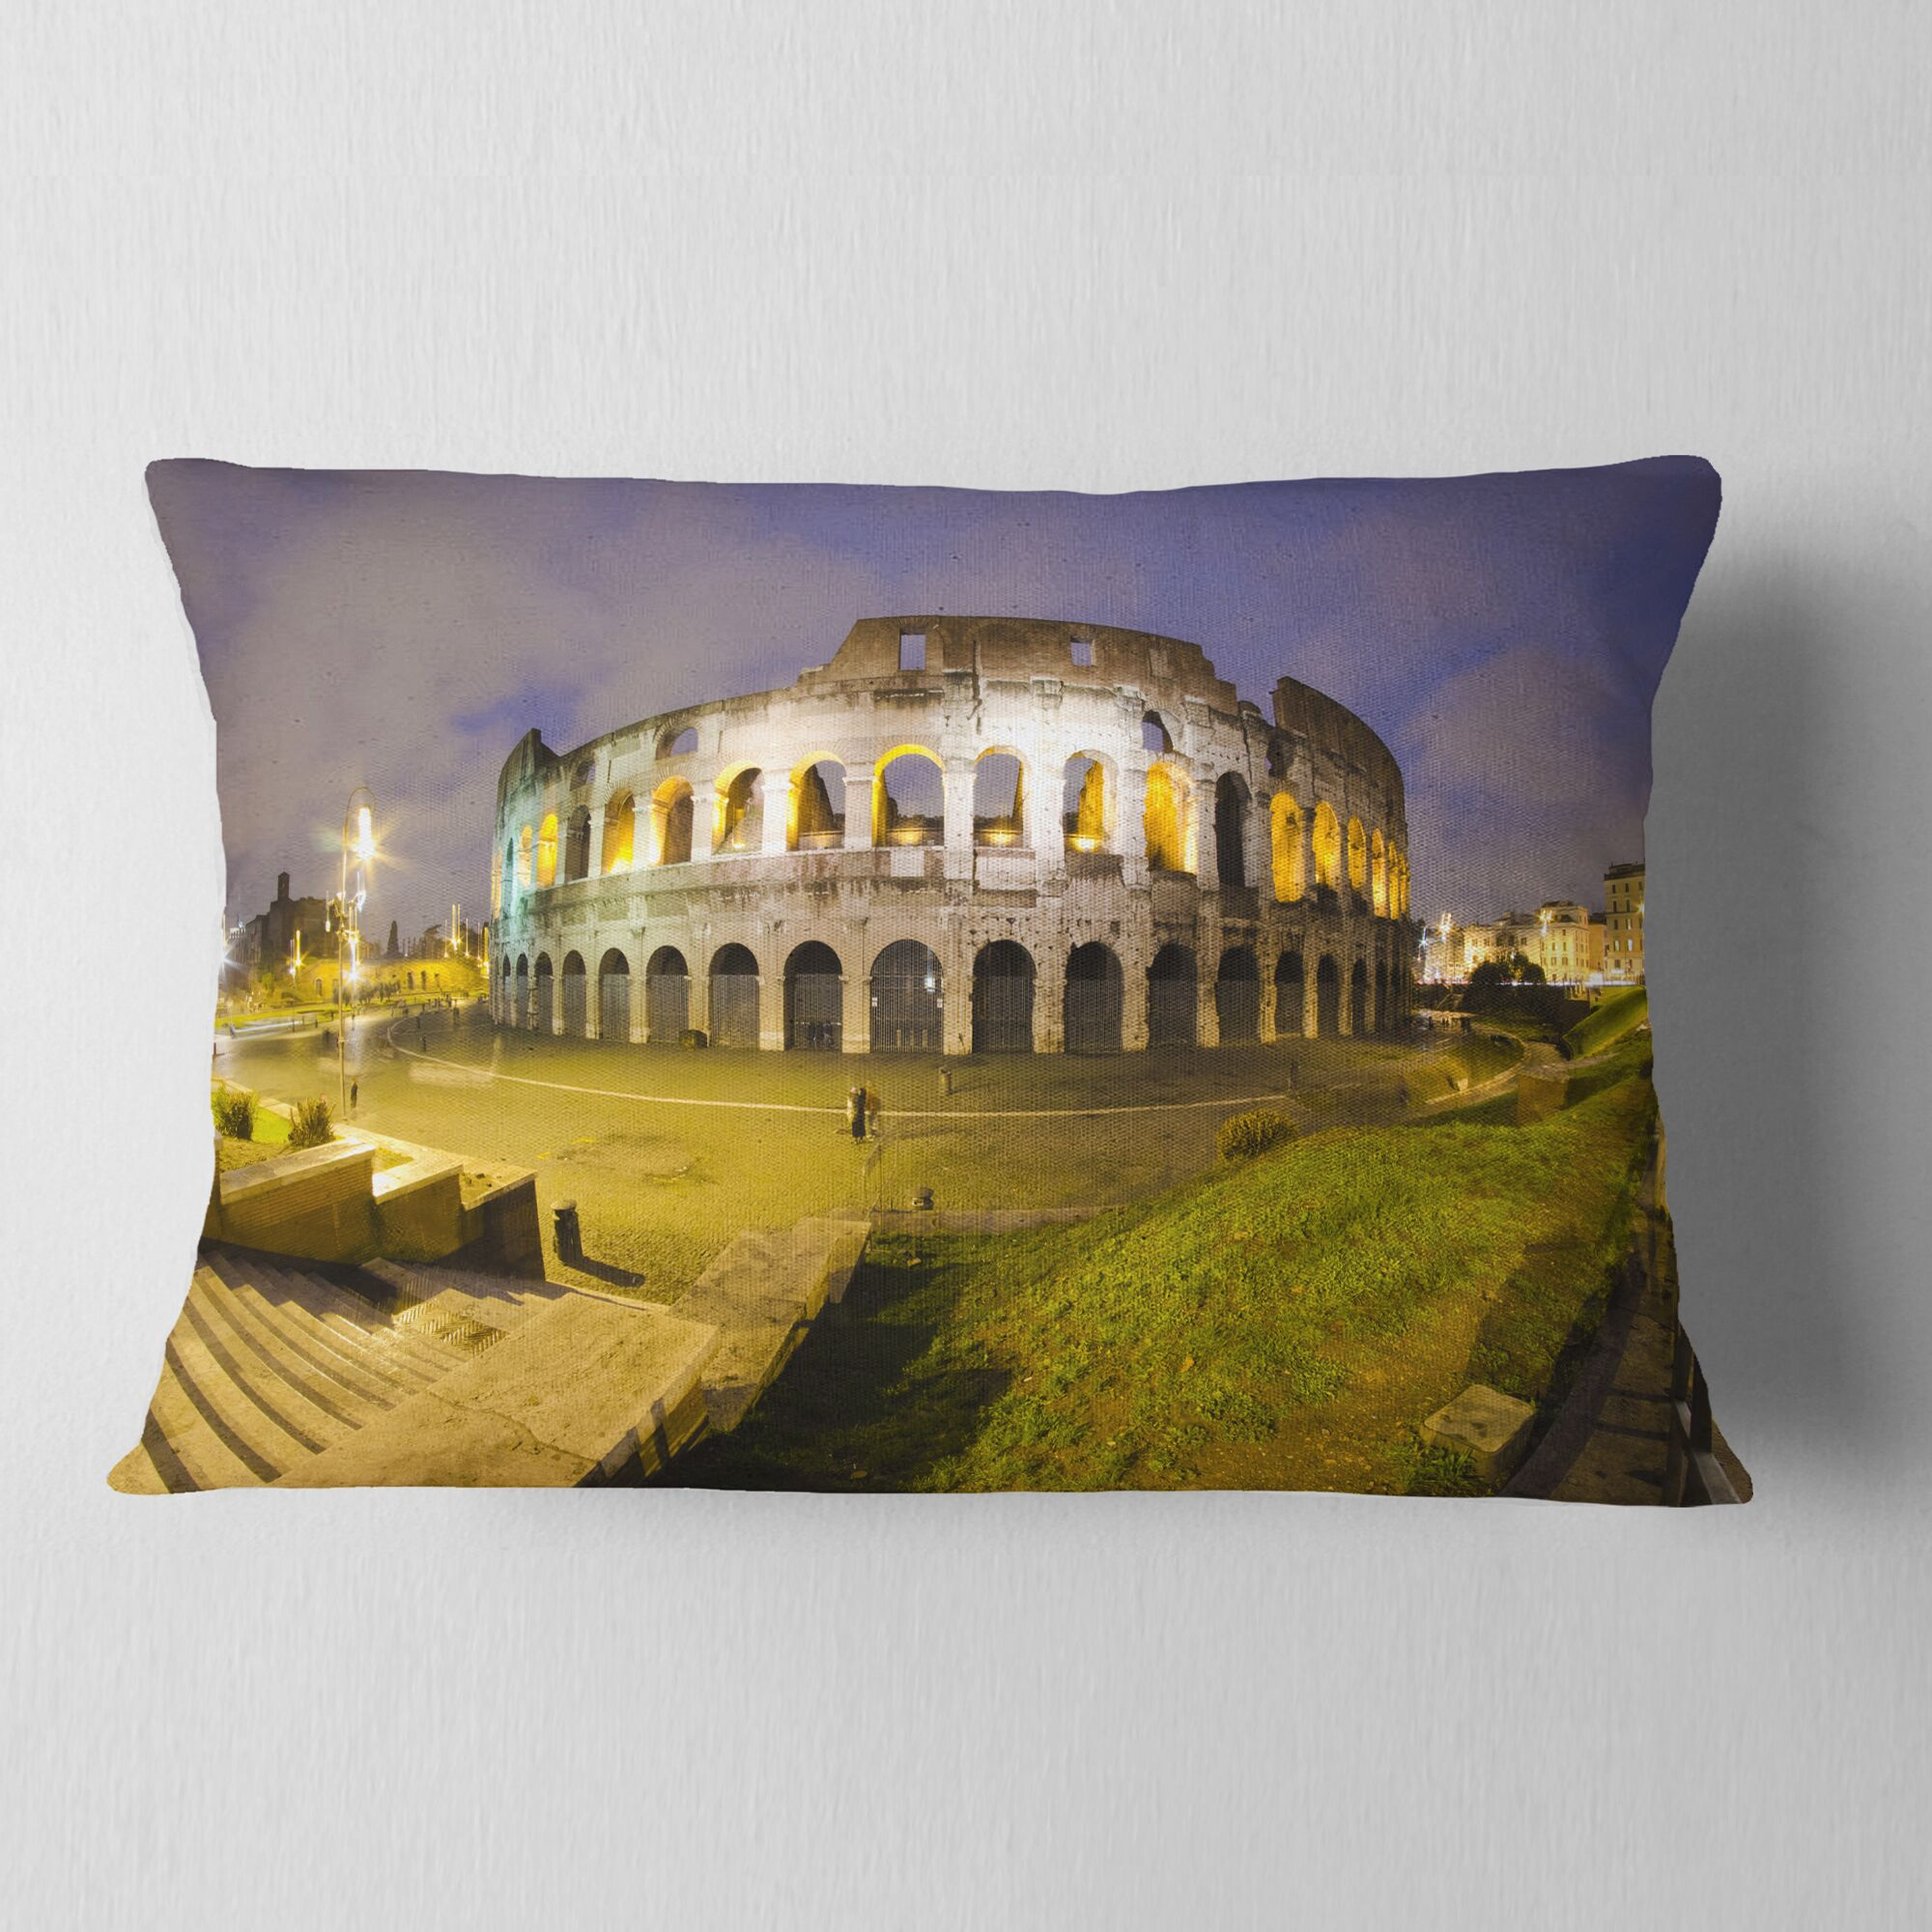 Landscape Monumental Colosseum by Night Lumbar Pillow